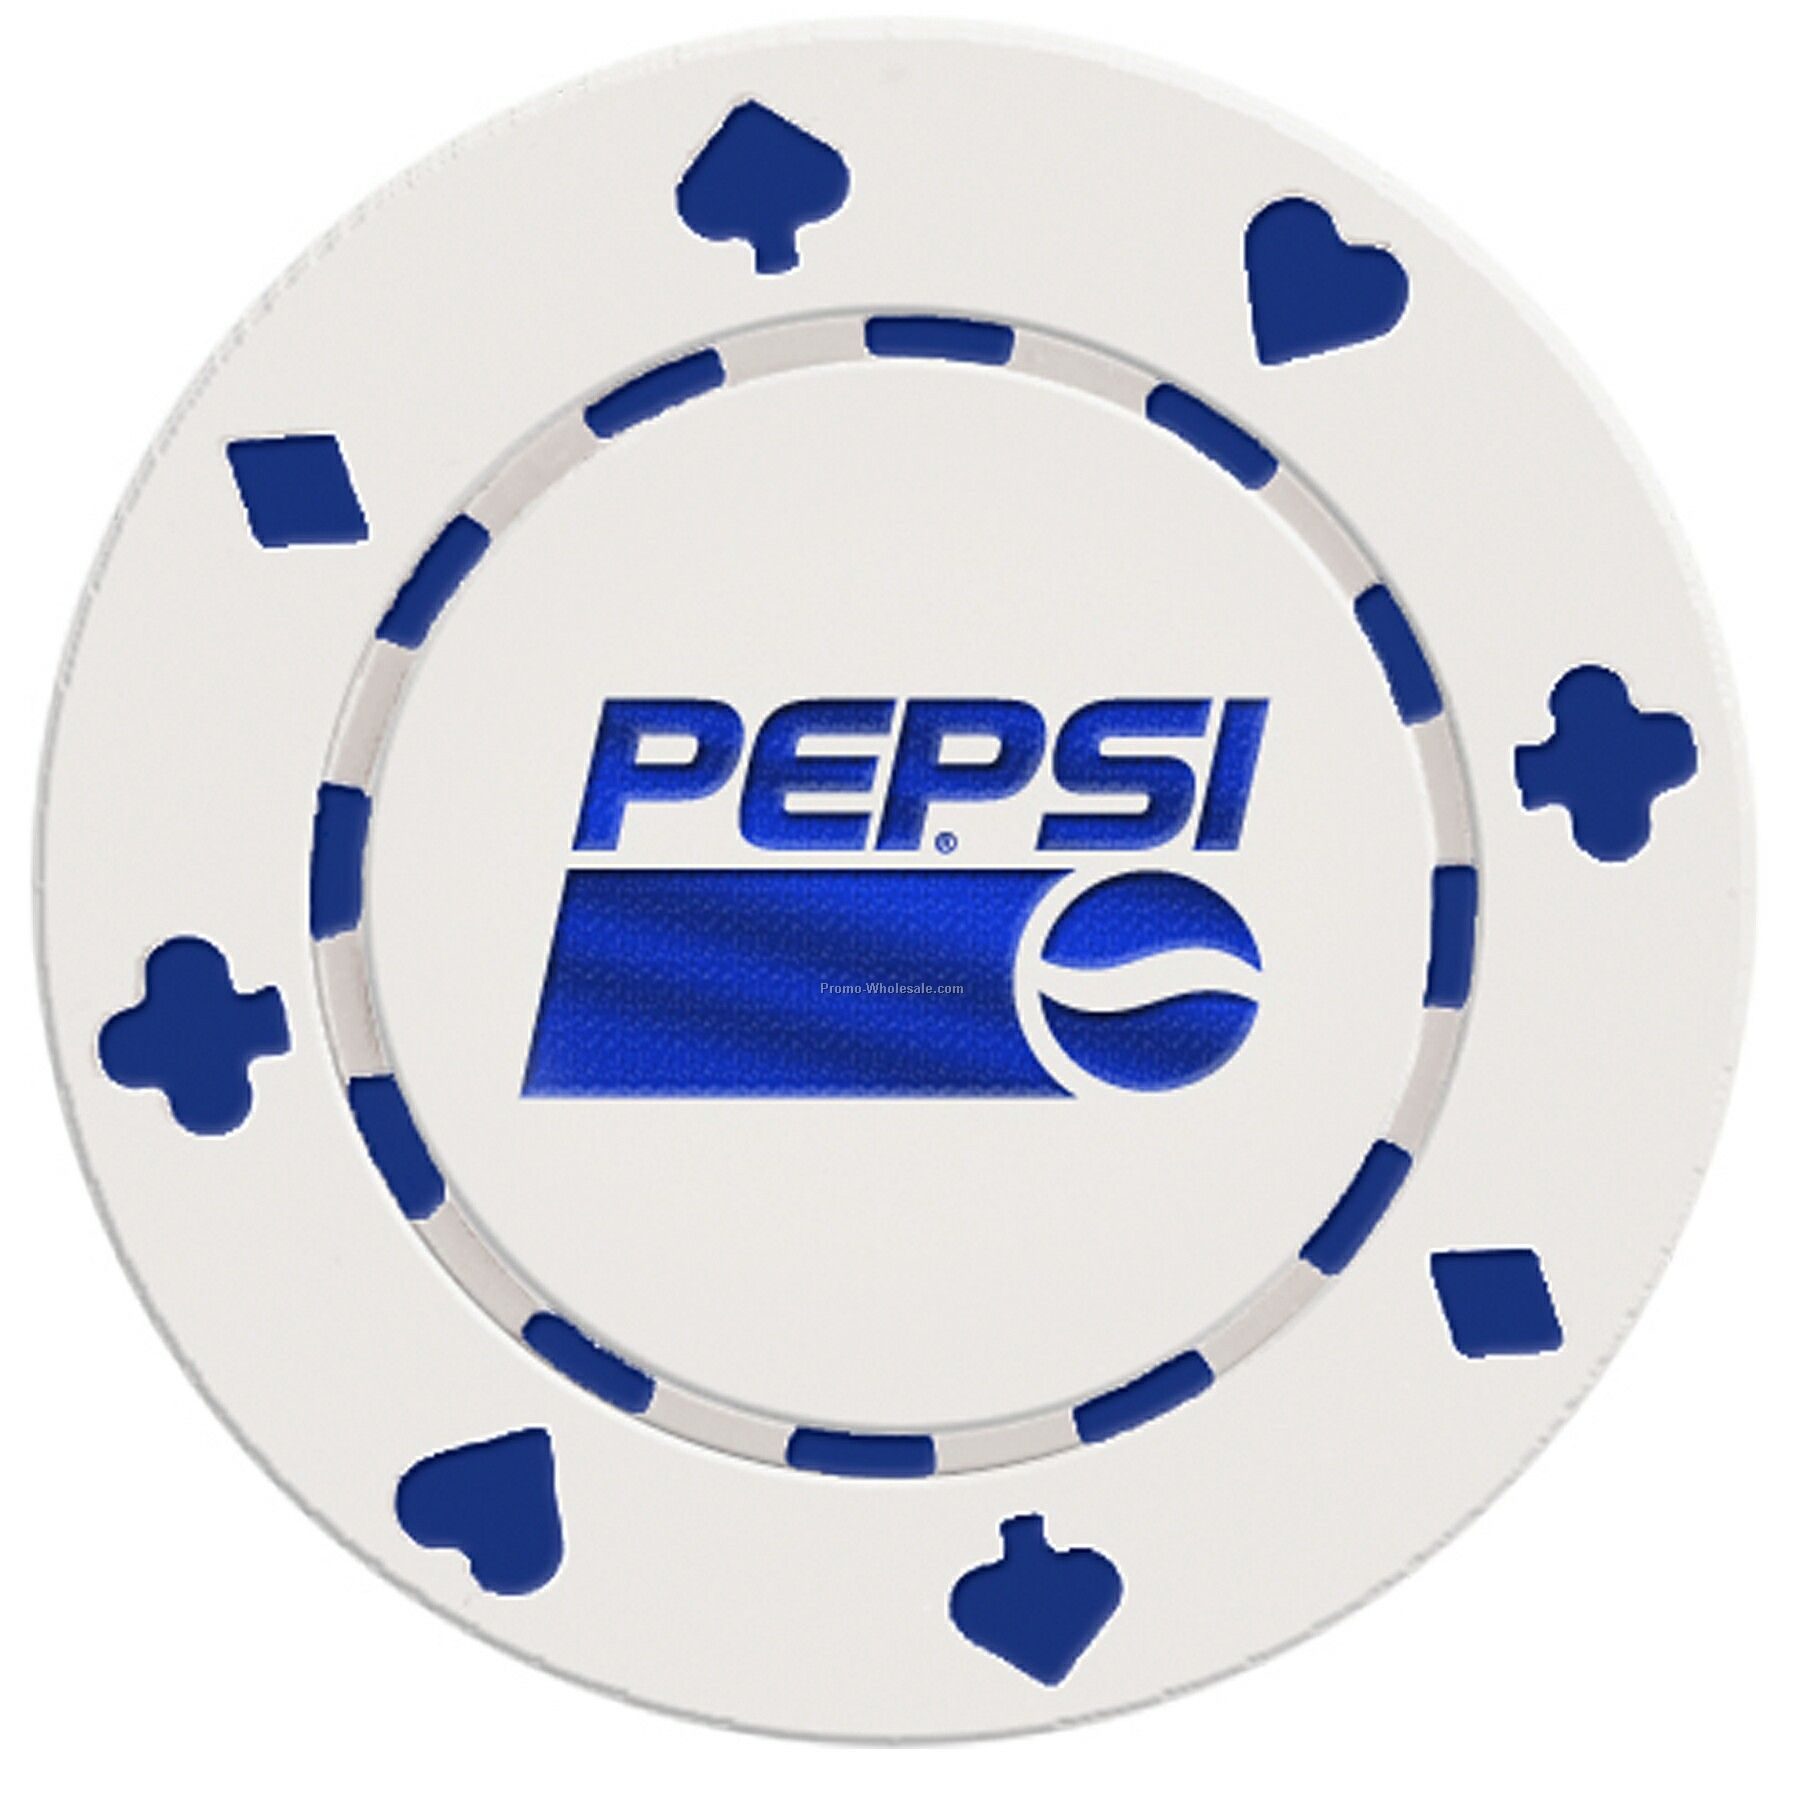 Poker Chip Business Cards images